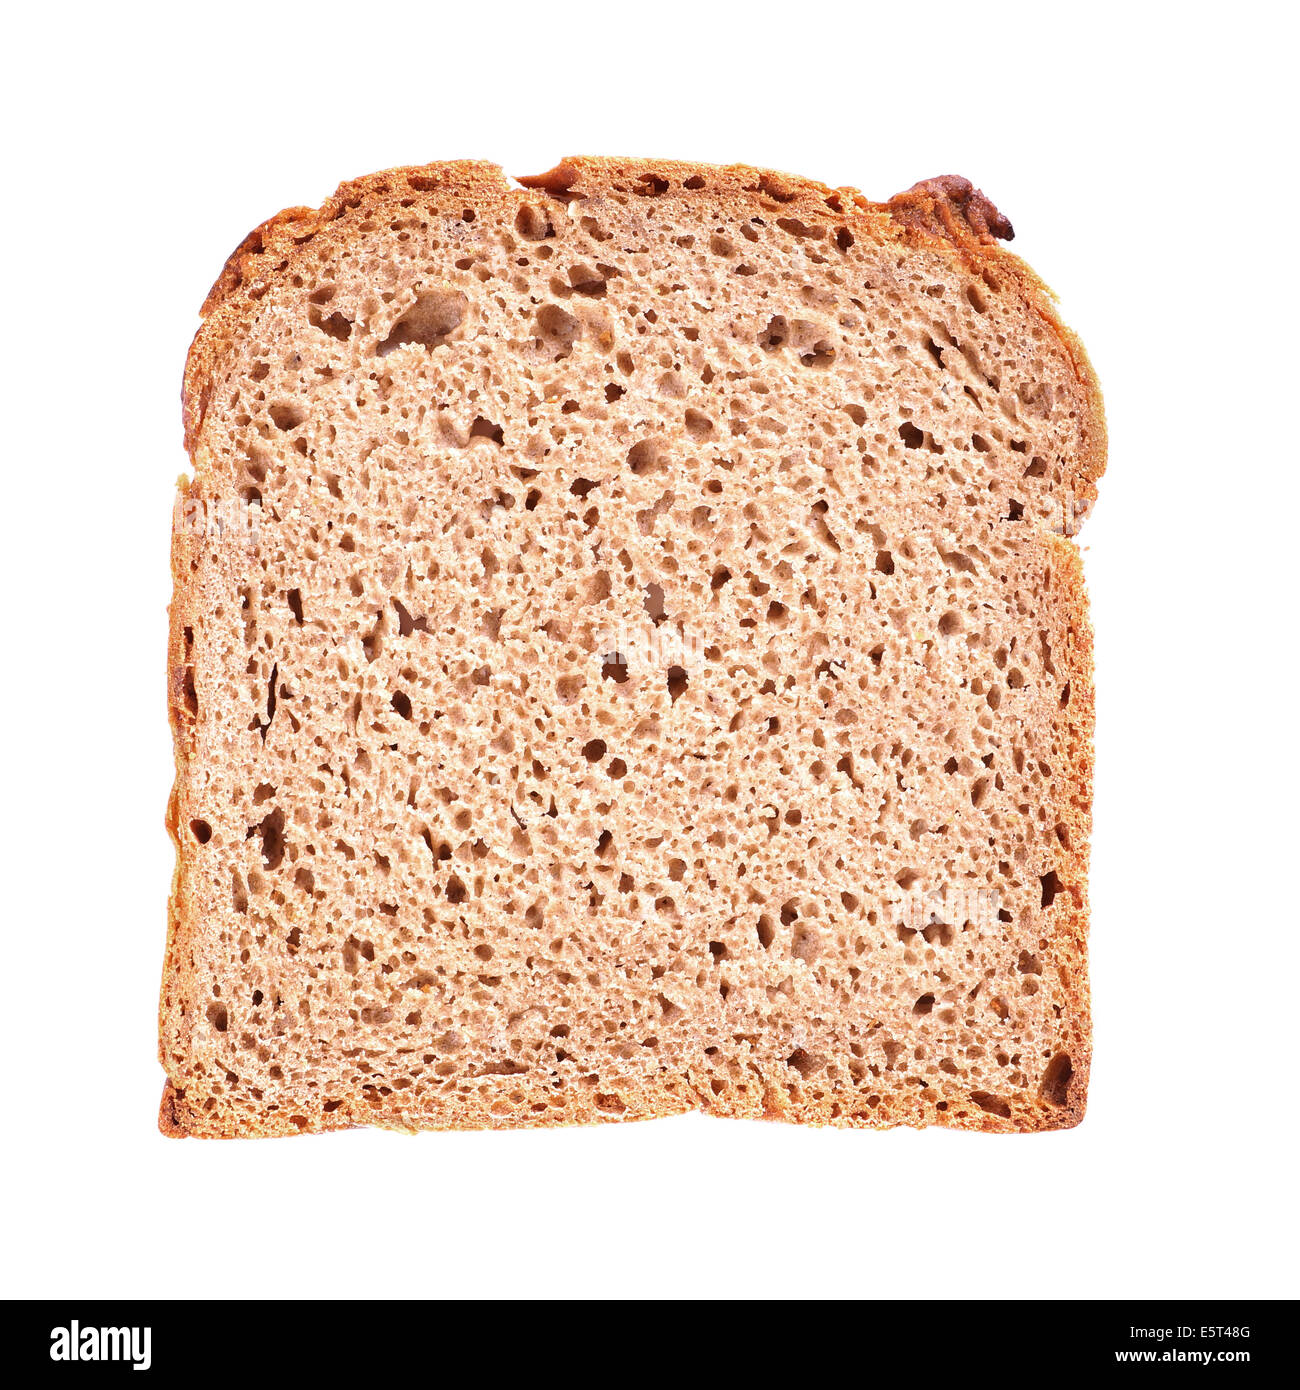 slice of brown bread known as Gerster in Germany - Stock Image